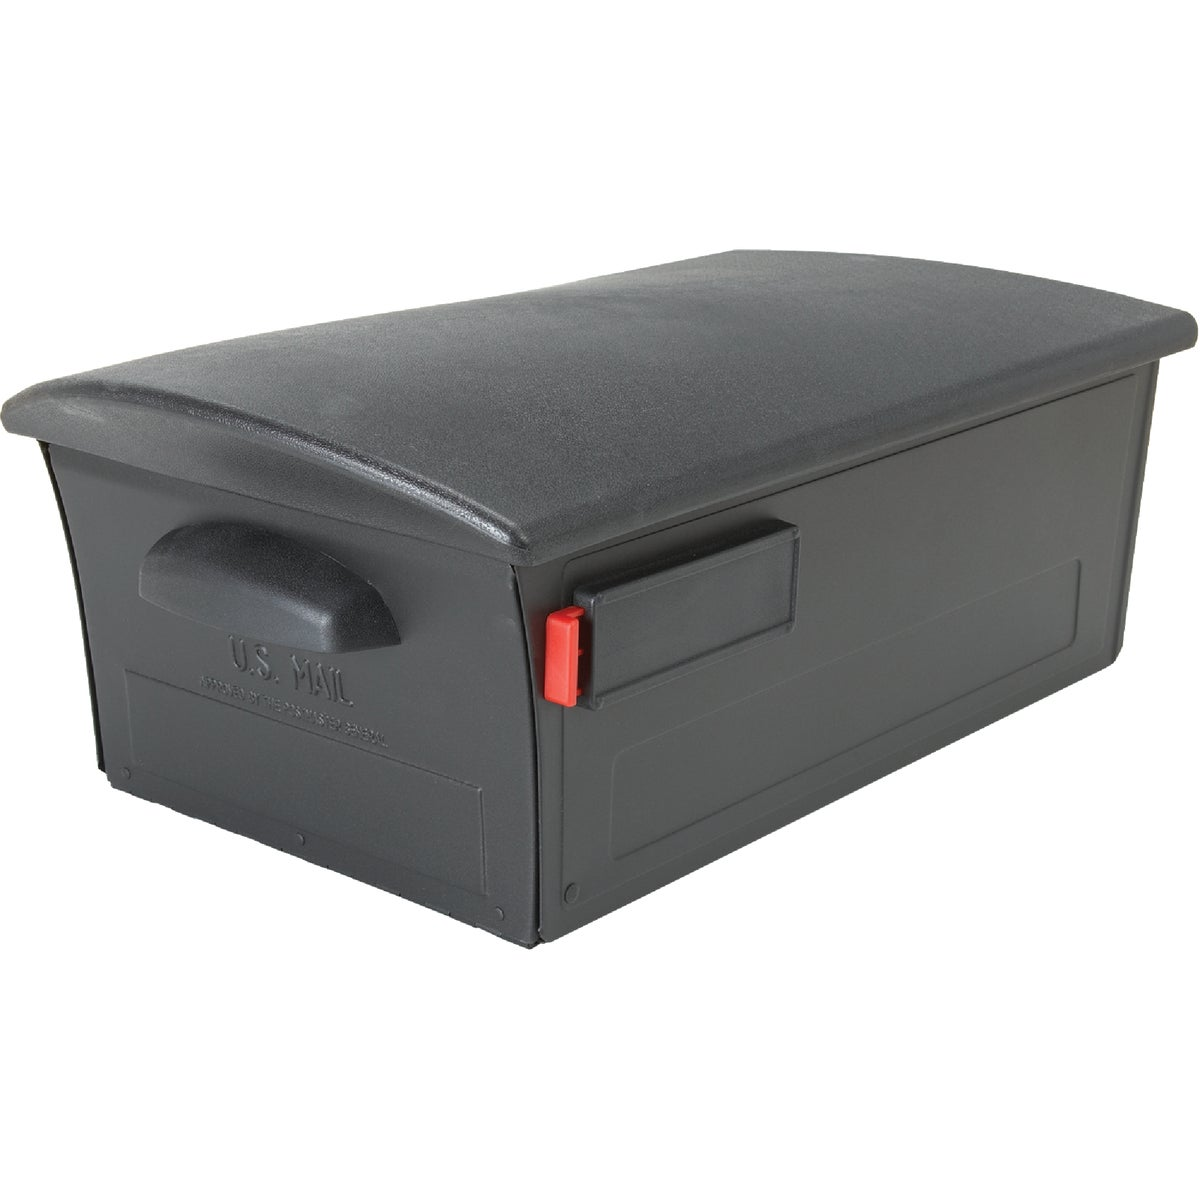 LOCKABLE RURAL MAILBOX